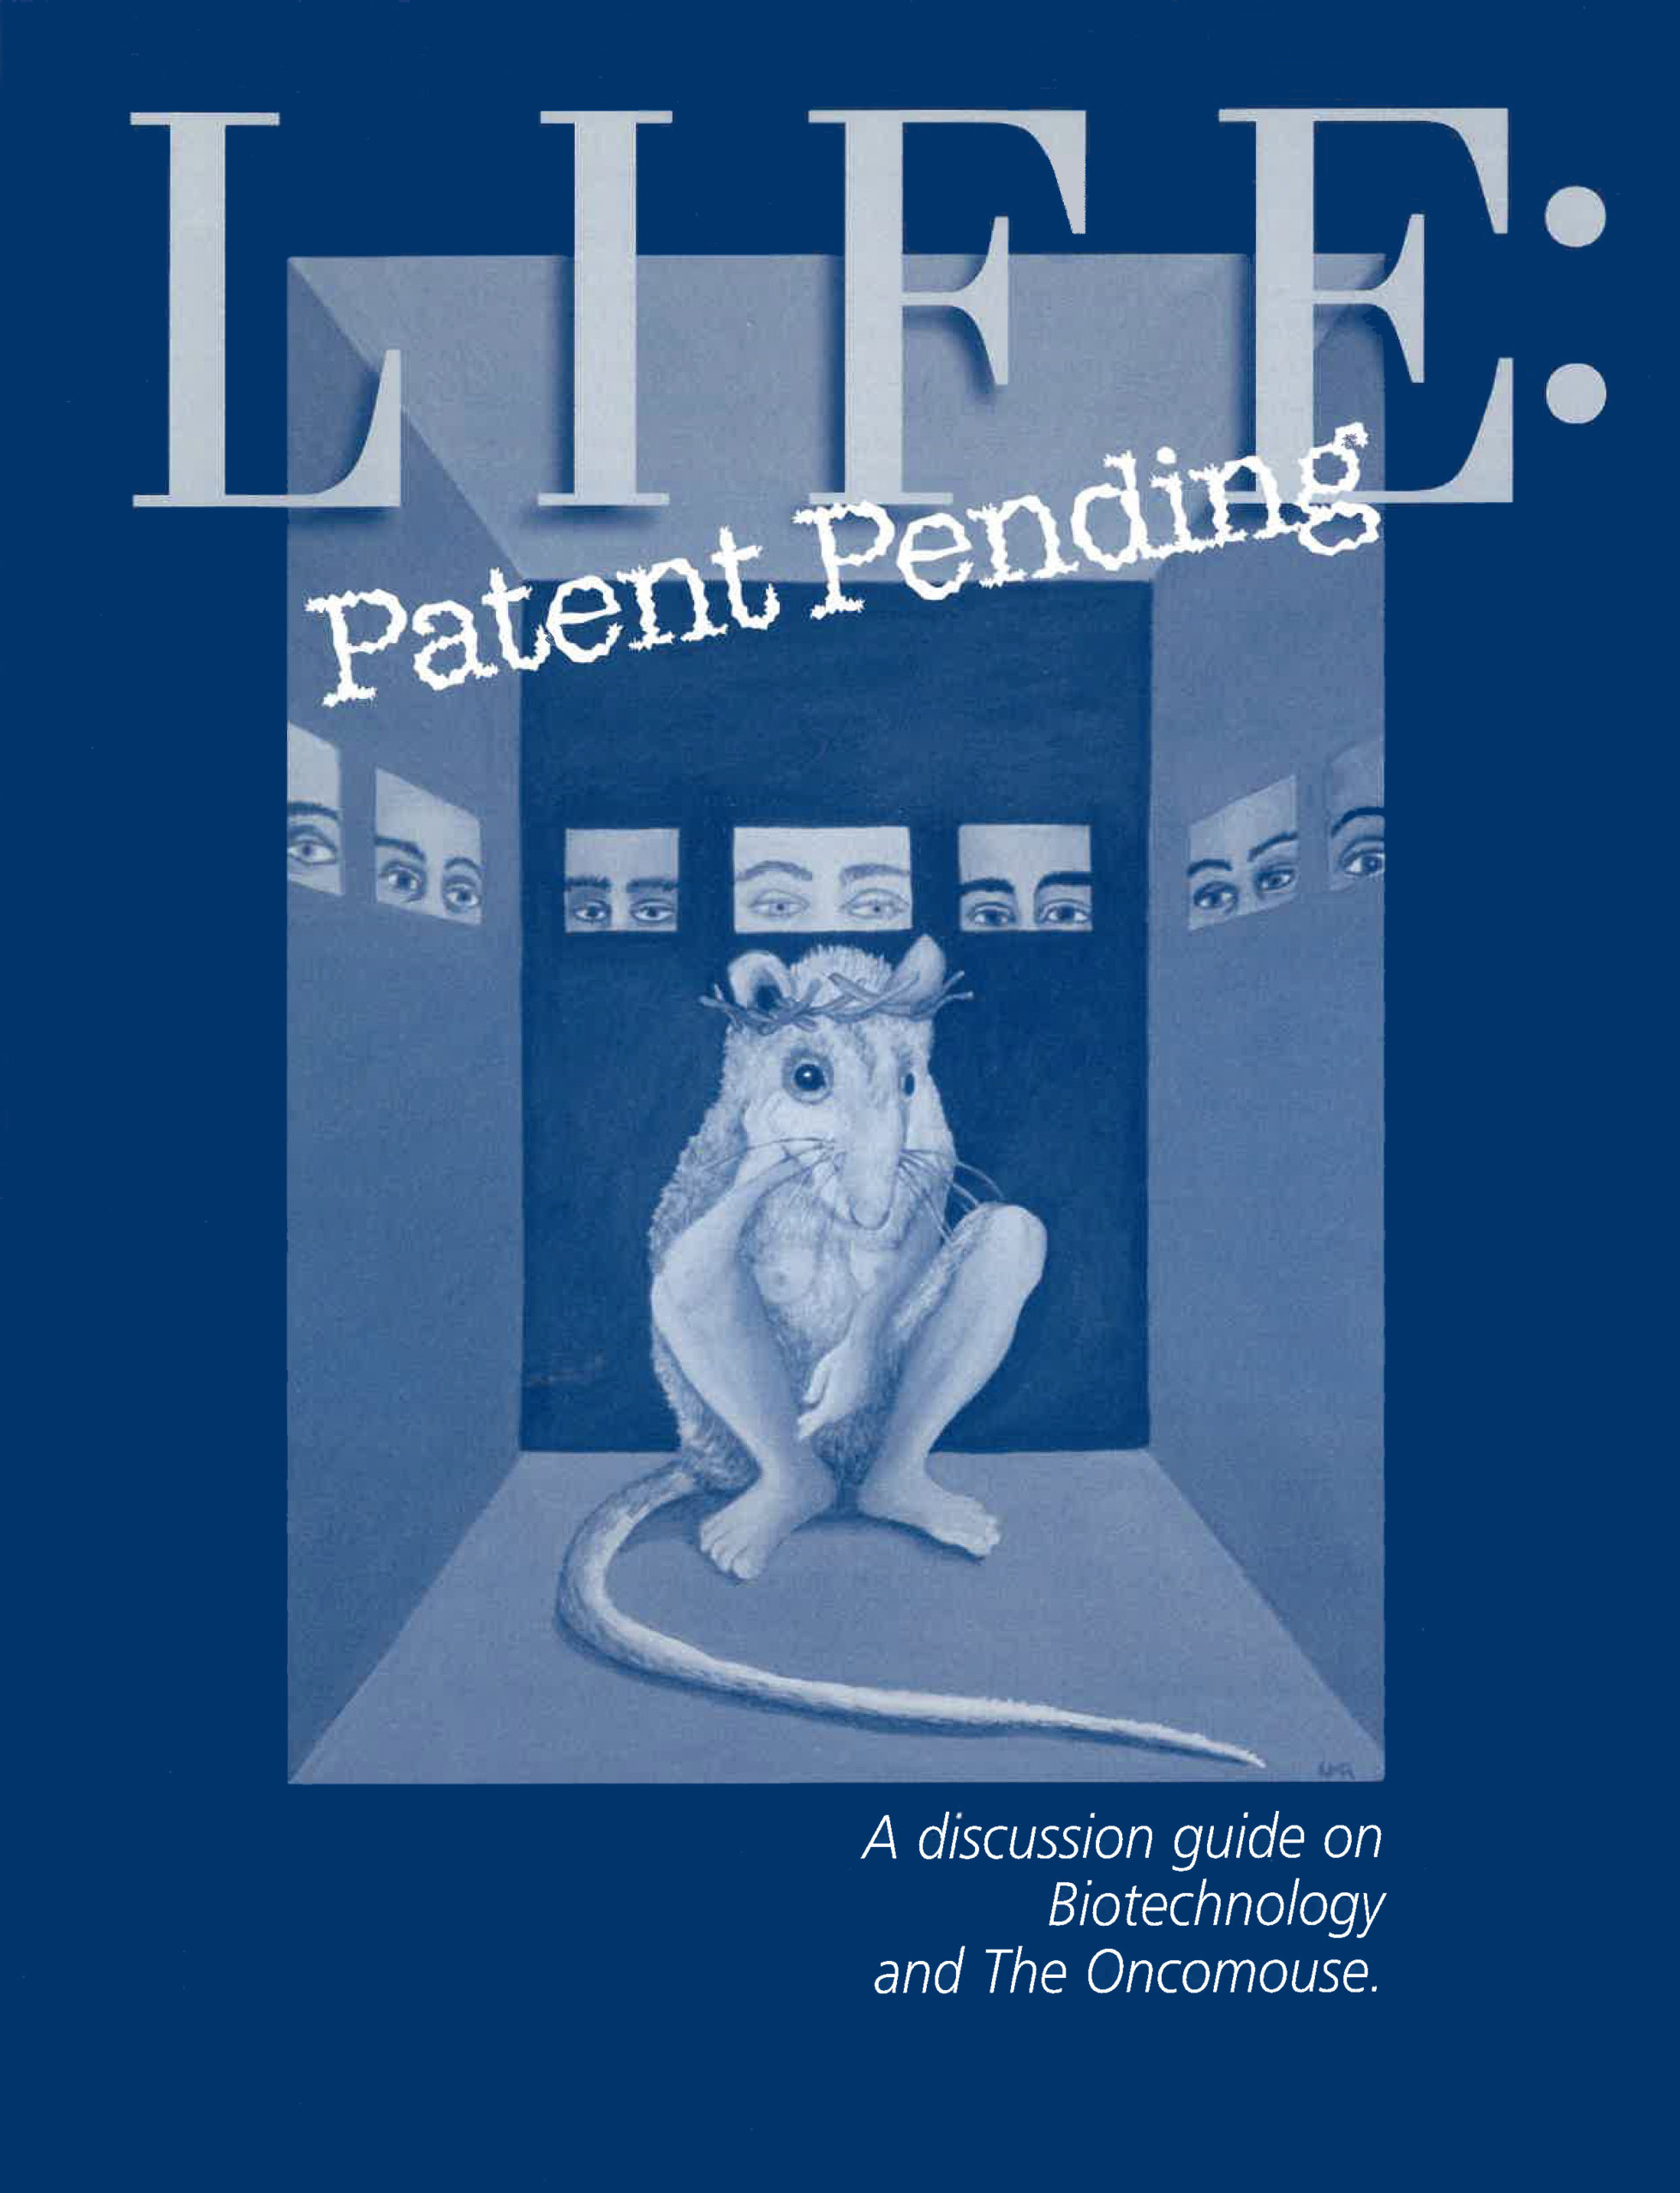 Book Cover: Life: Patent Pending. A discussion guide on Biotechnology and The Oncomouse